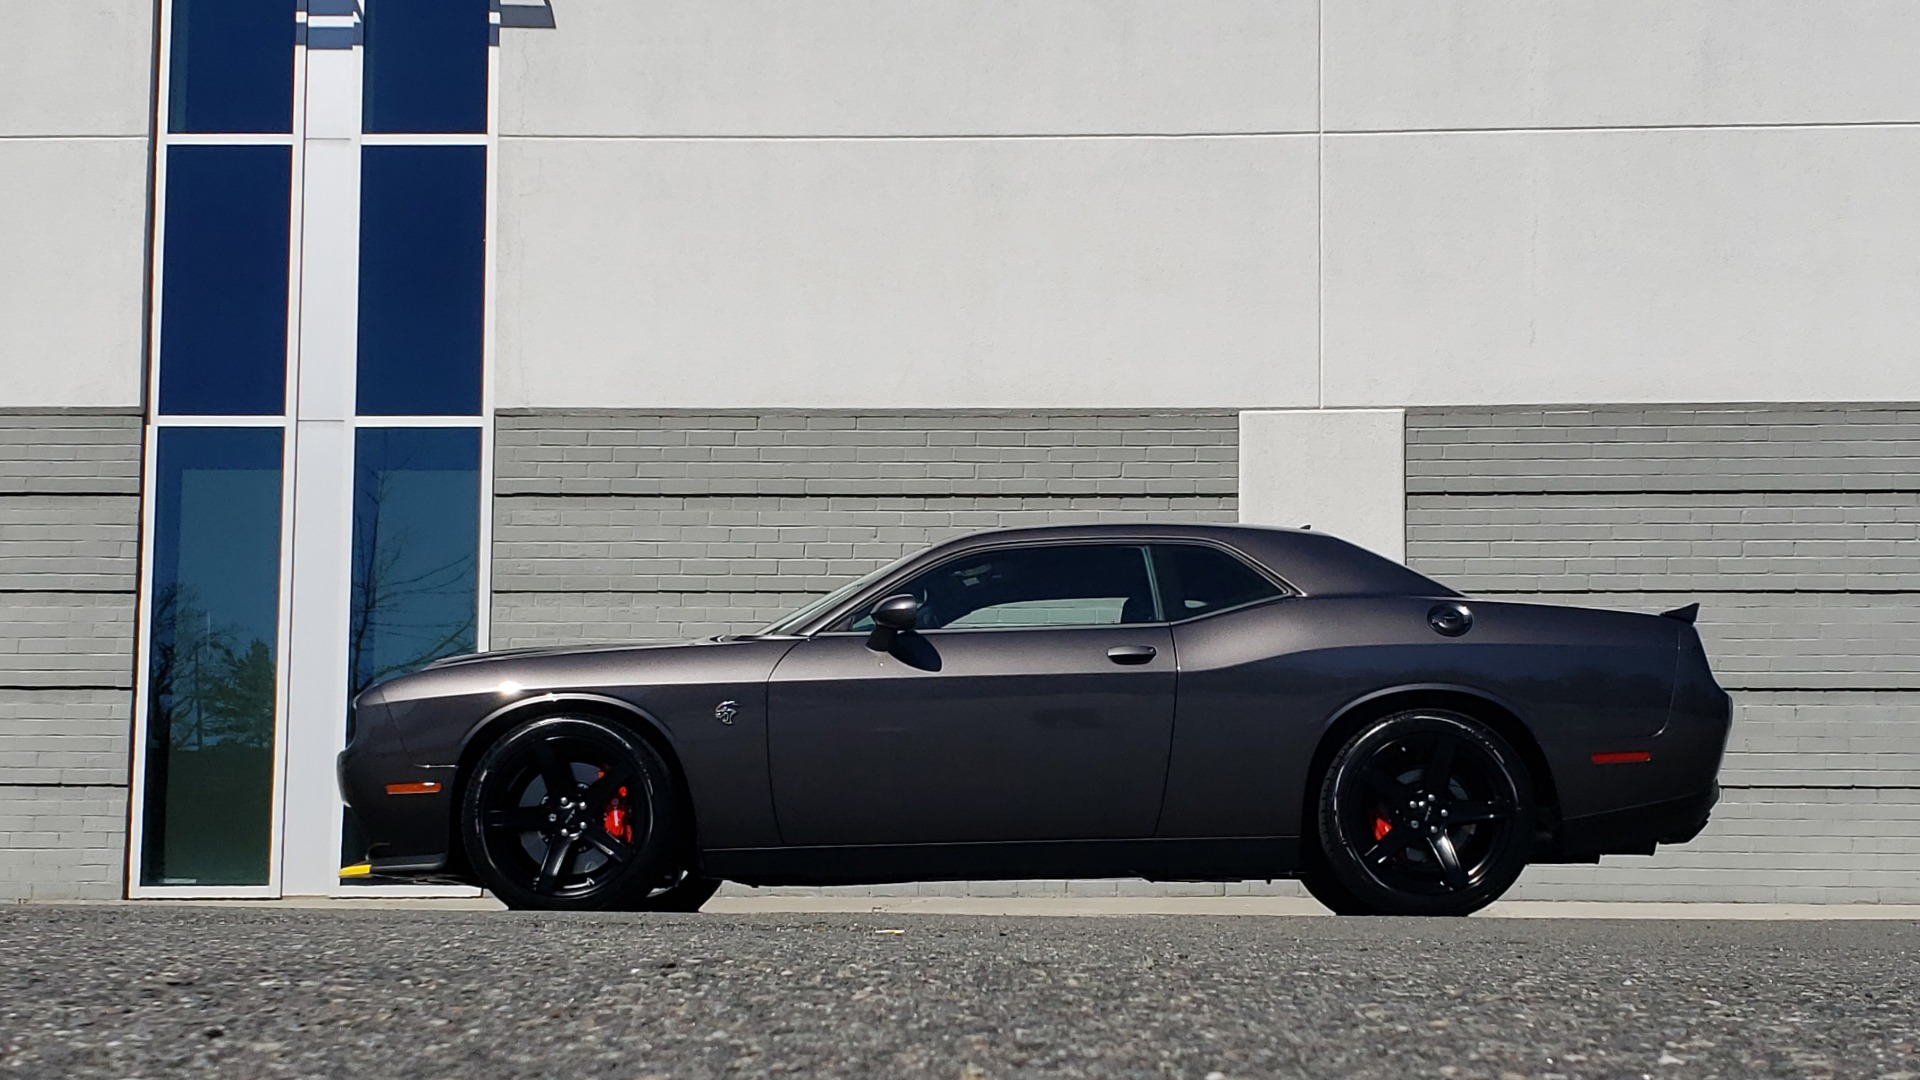 Used 2020 Dodge CHALLENGER SRT HELLCAT (717HP) / NAV / AUTO / CLOTH / REARVIEW / LOW MILES for sale Sold at Formula Imports in Charlotte NC 28227 4